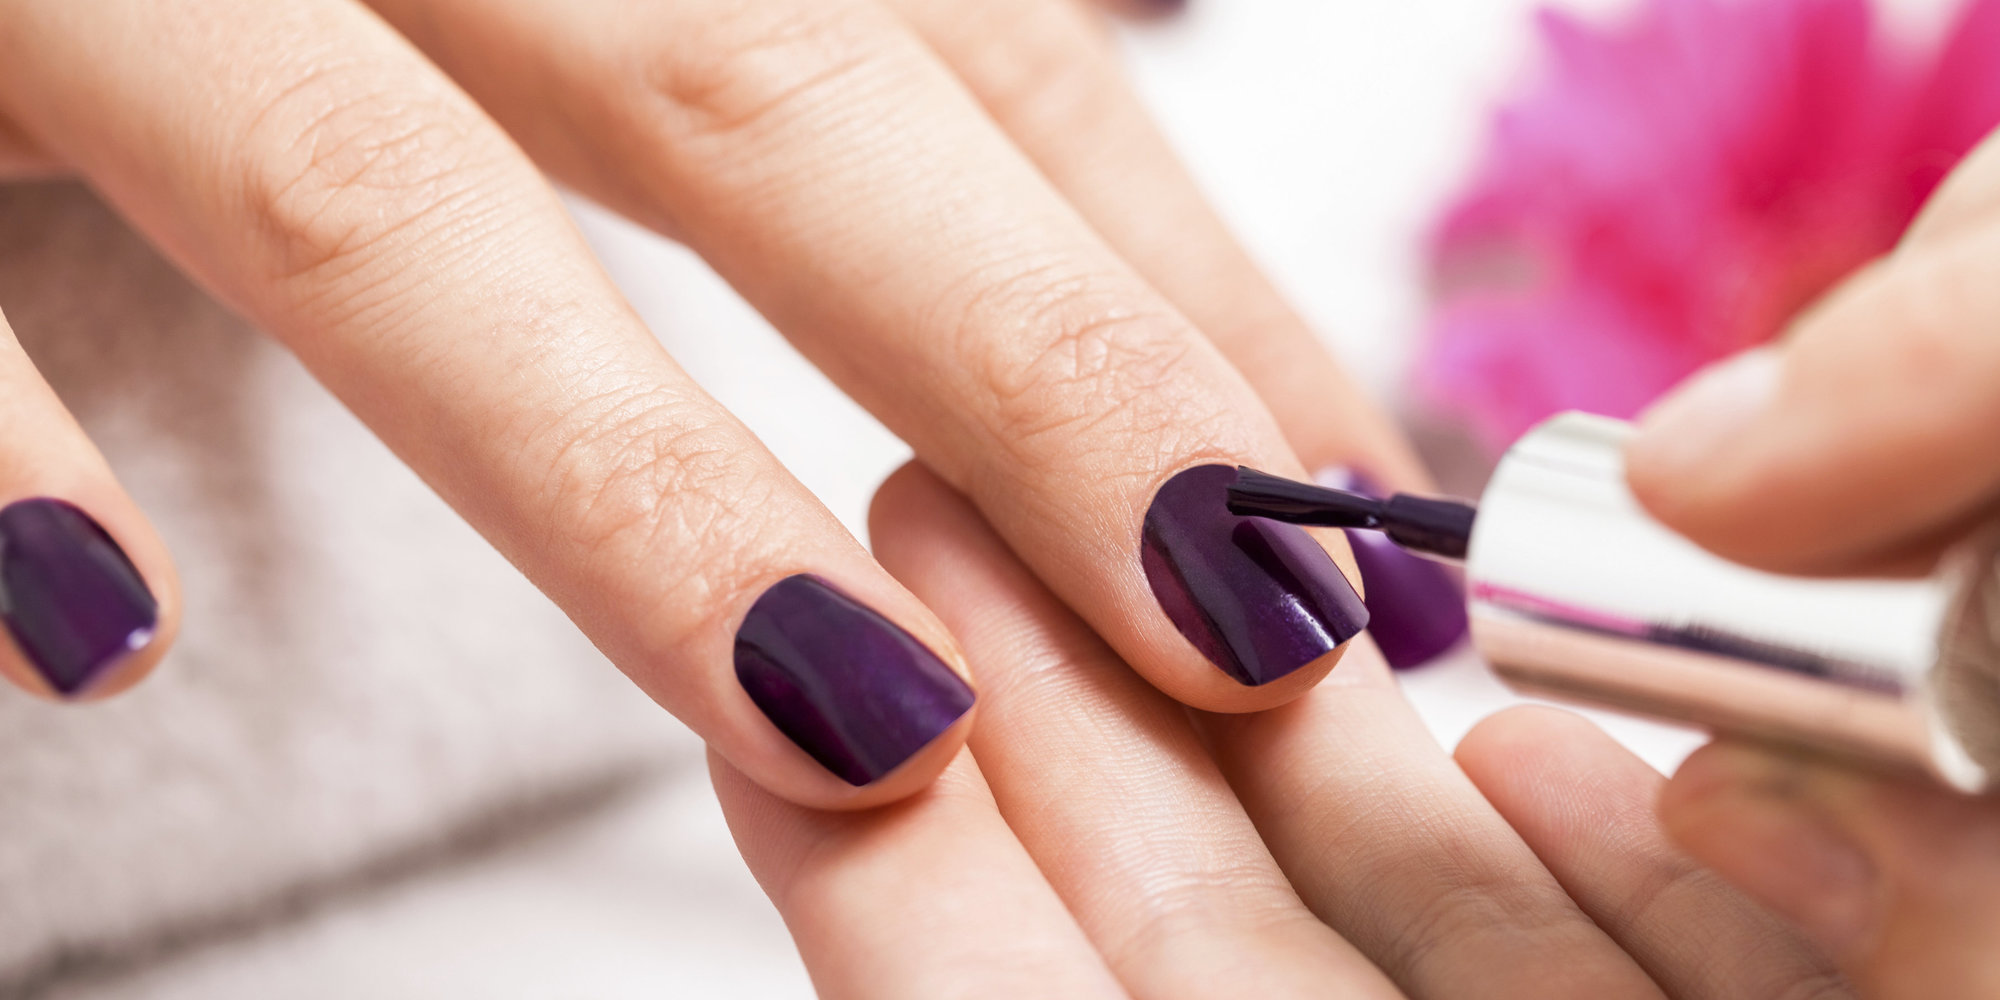 How to make Dark Nail Polish work in Summer - Beauty Health Times